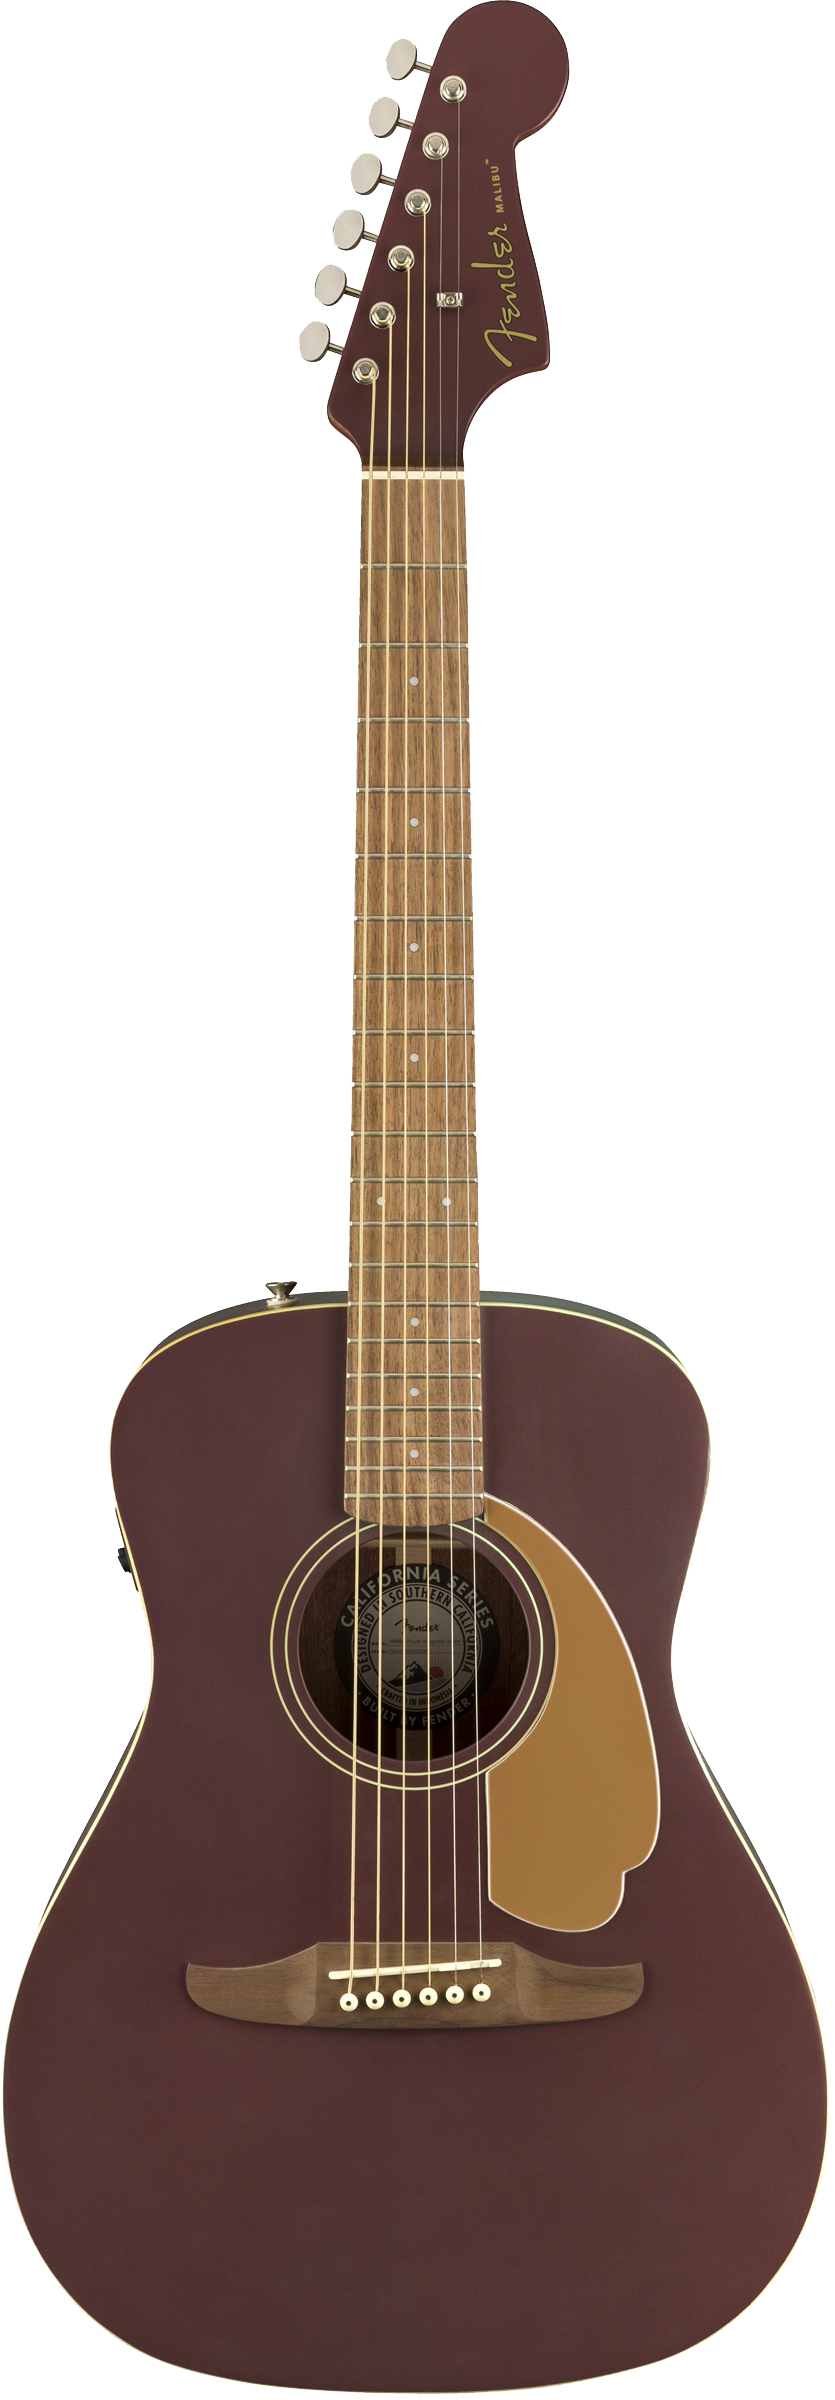 Fender Malibu Player Acoustic / Electric Guitar - Burgundy Satin